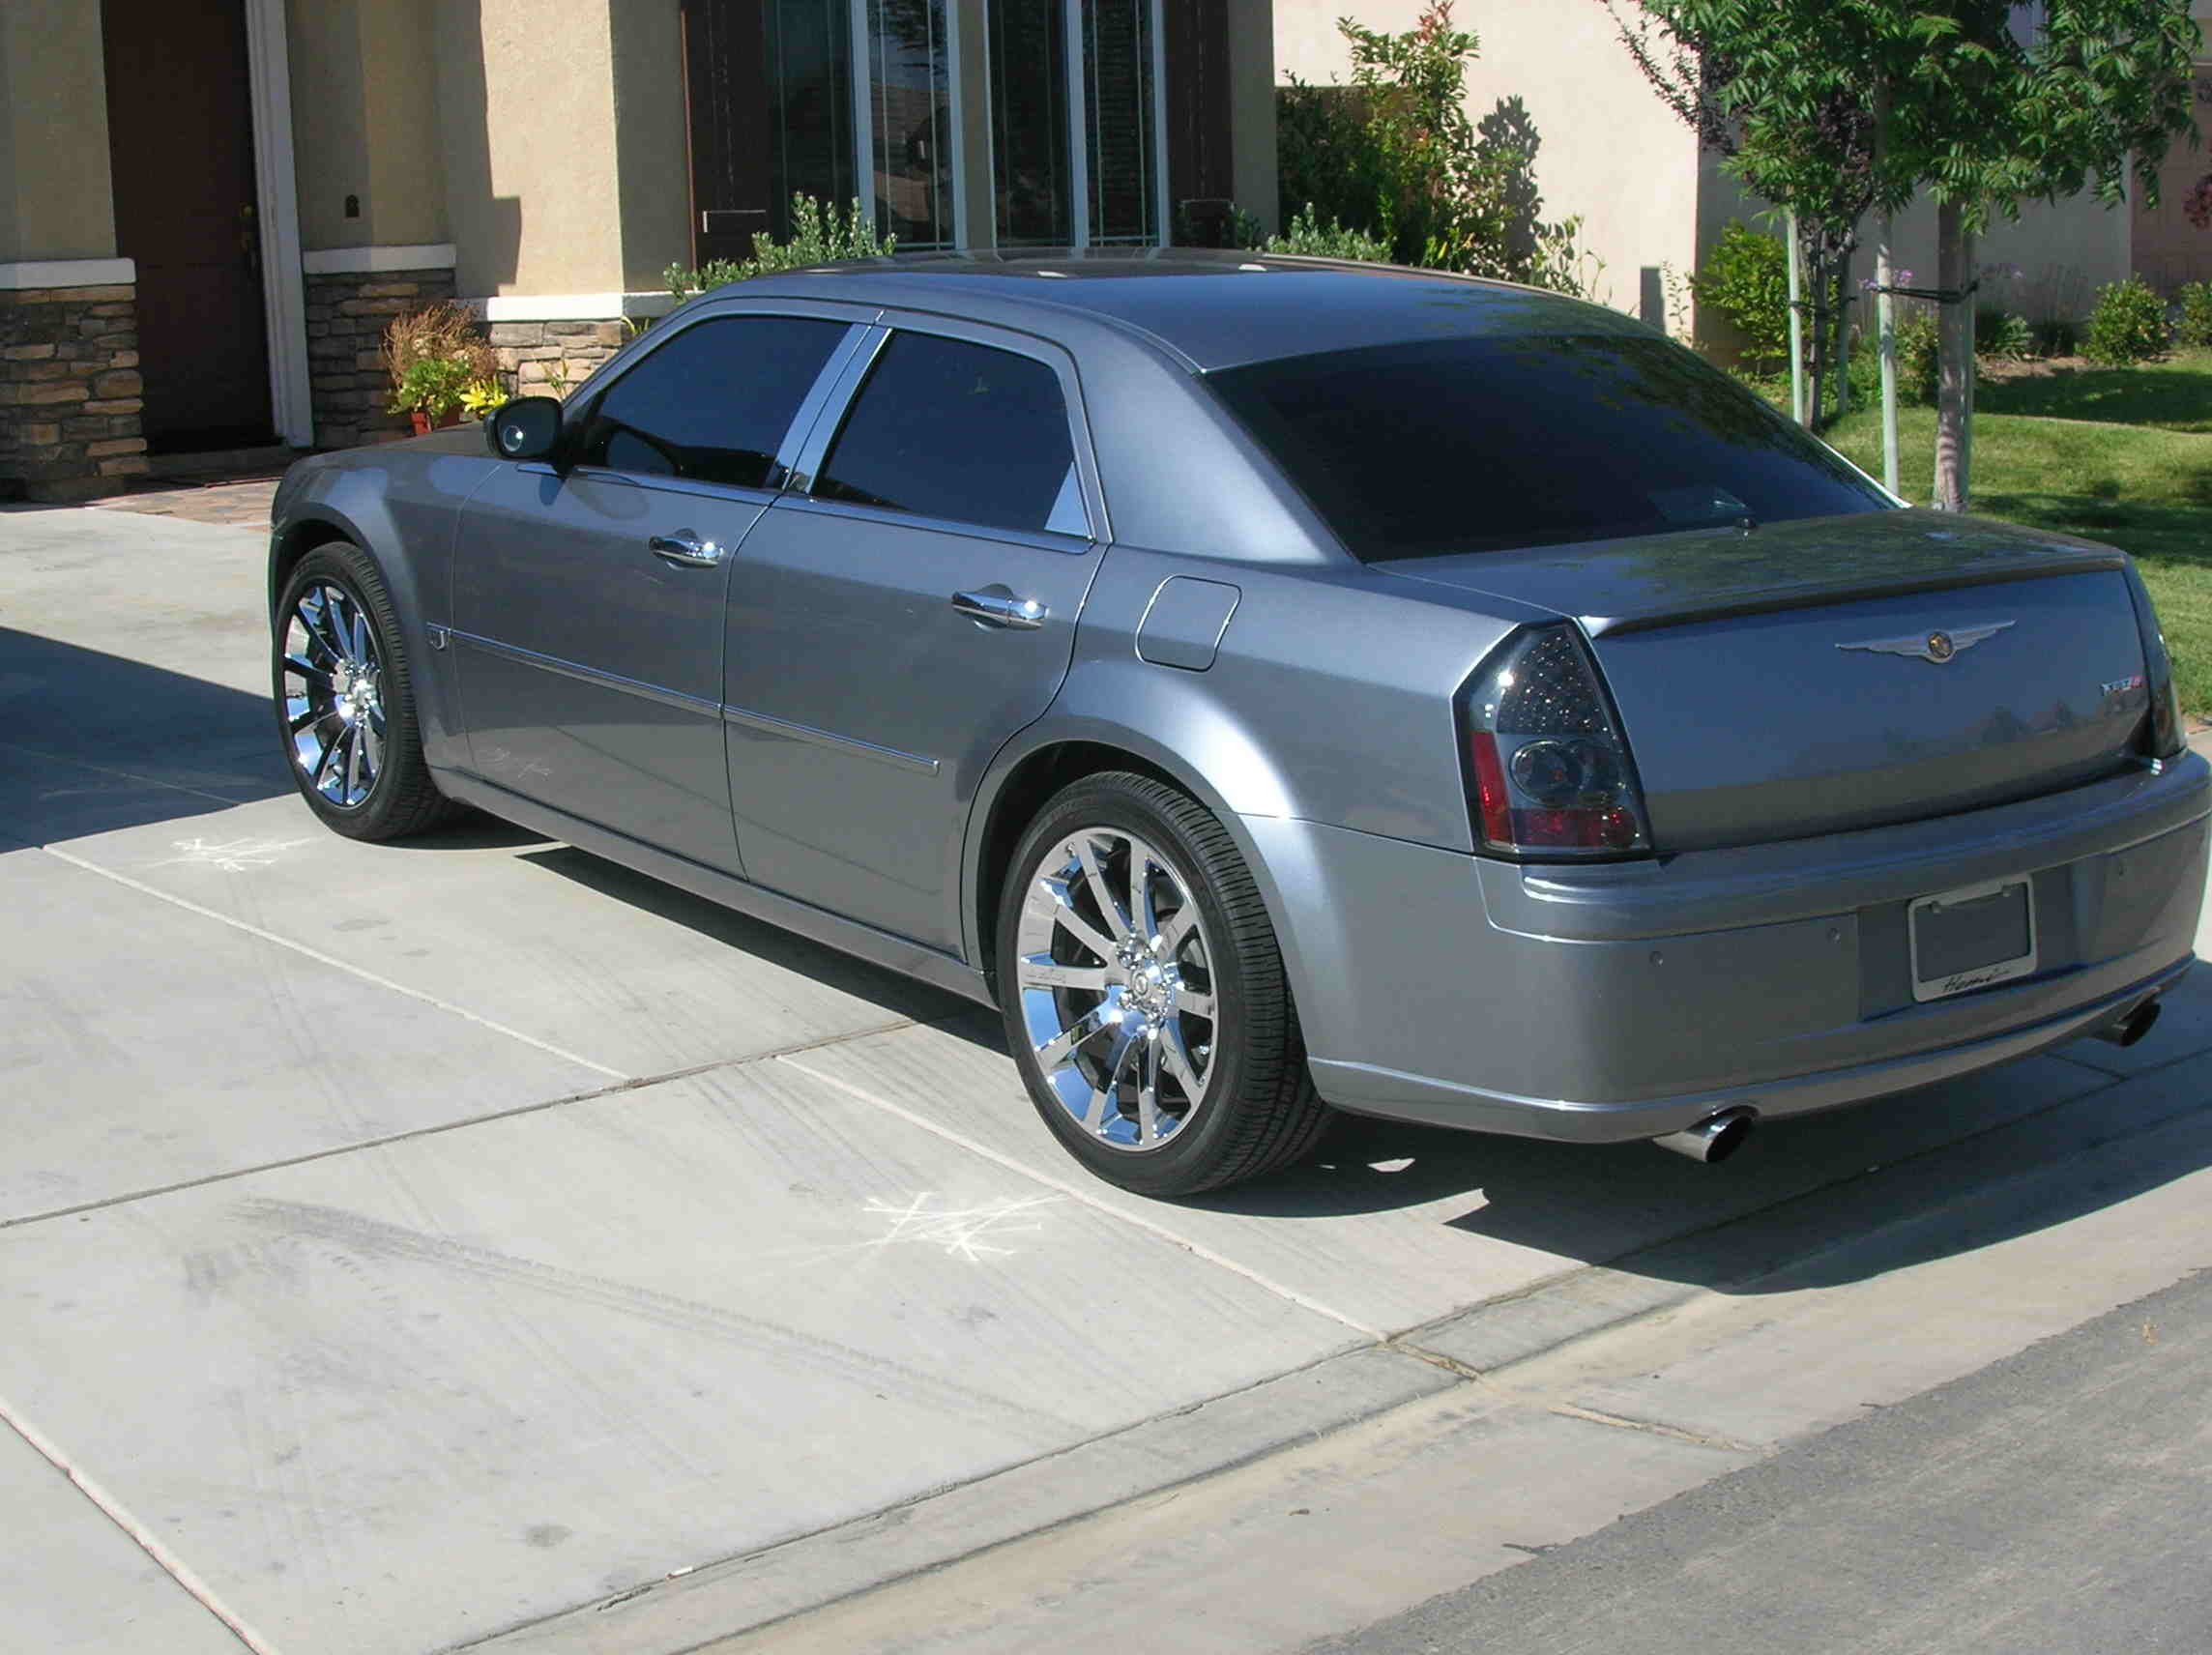 out srt malaise fights with sport packages muscle modern appearance murdered chrysler